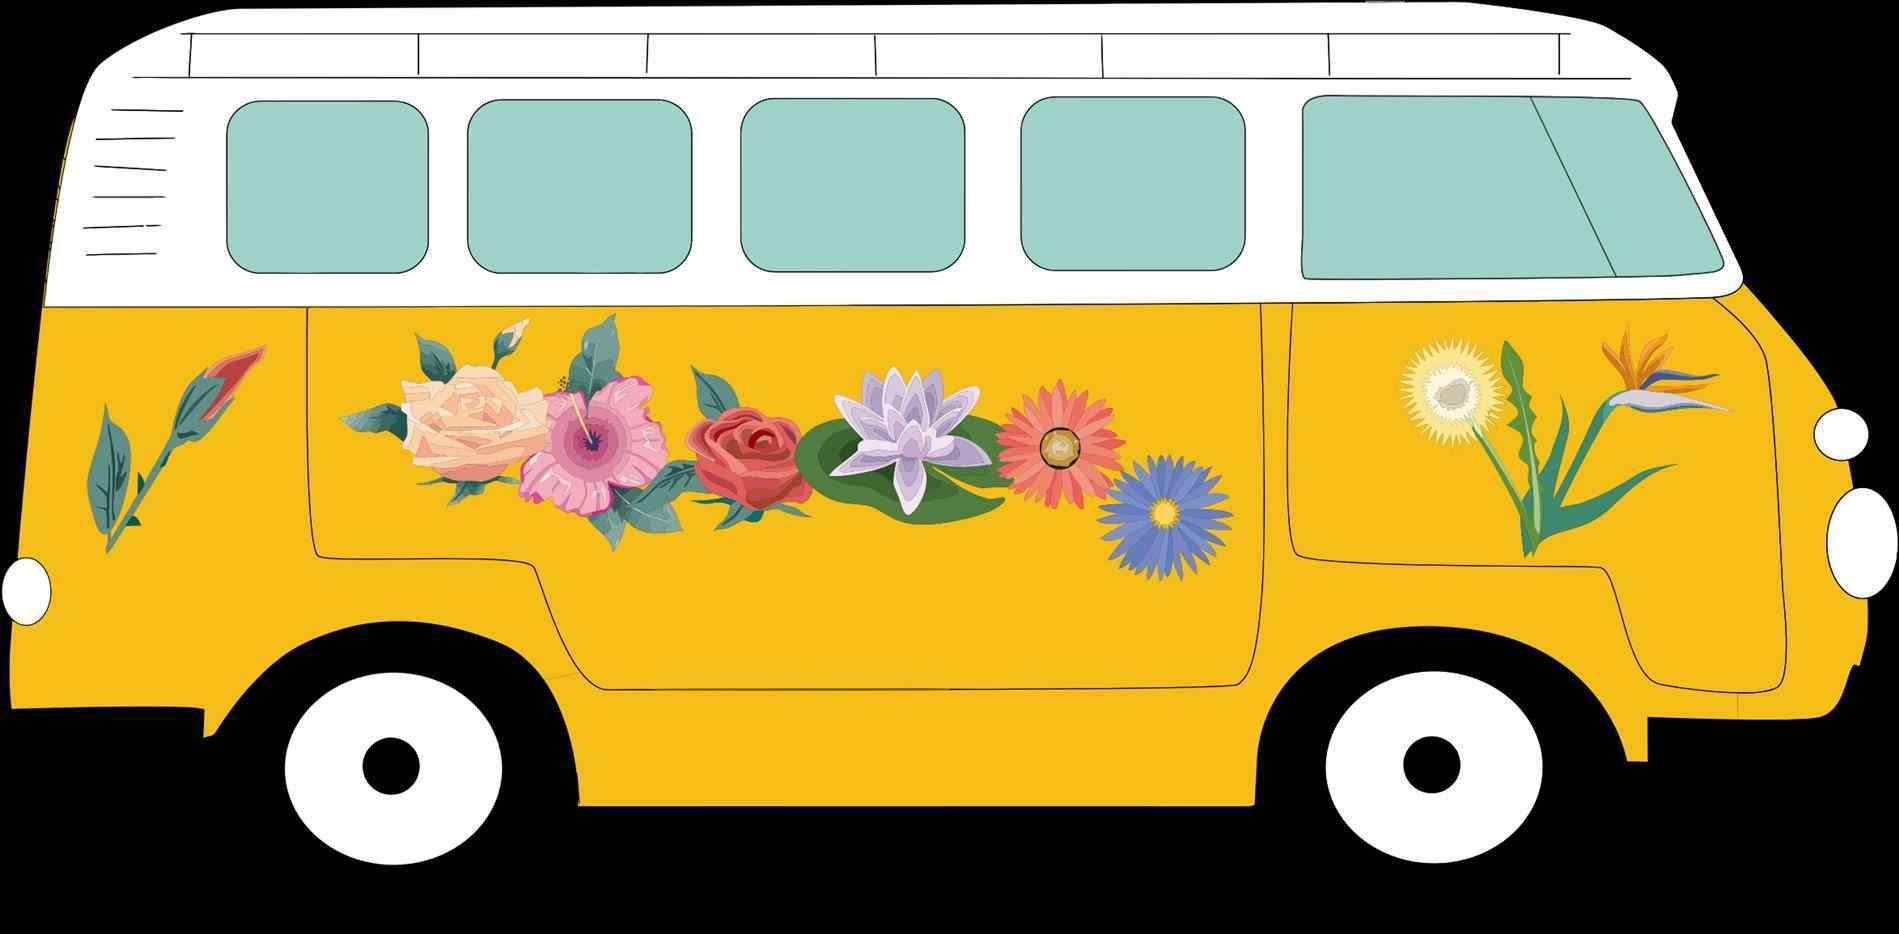 1899x934 Camper Shasta Camper Clipart Clipart Old Fashioned Pencil And